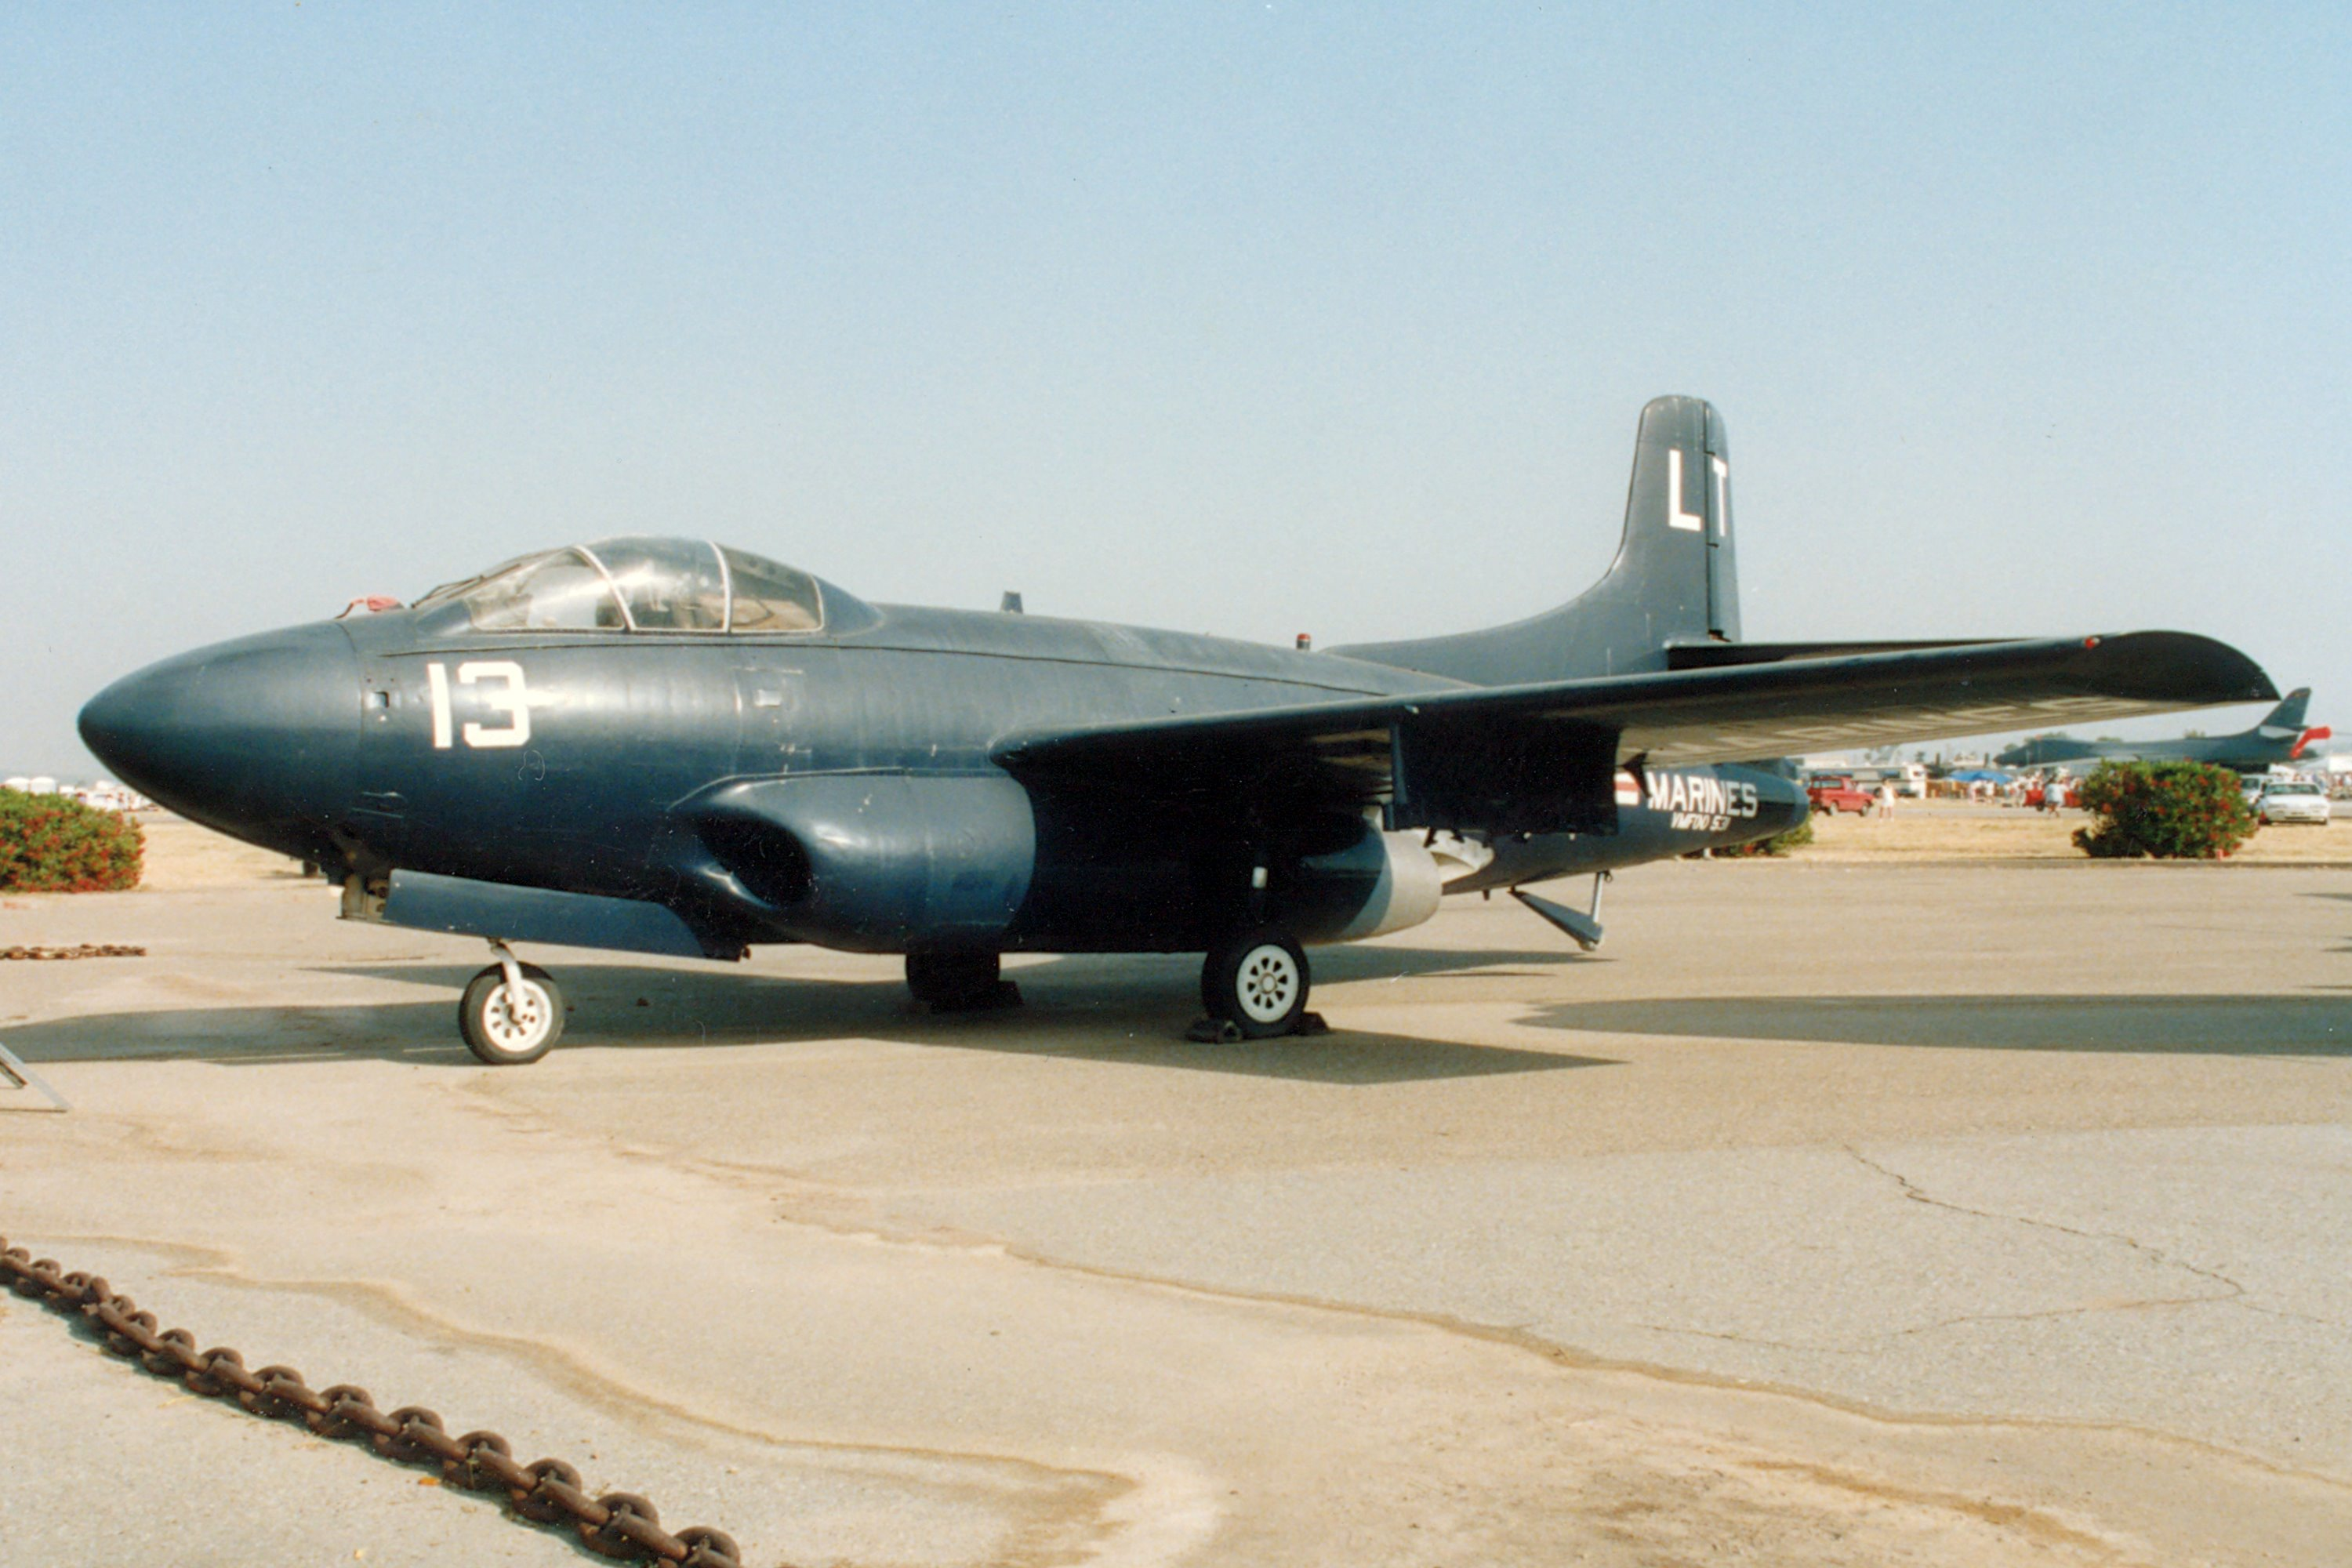 Douglas F3D-2 Skynight specifications and photos